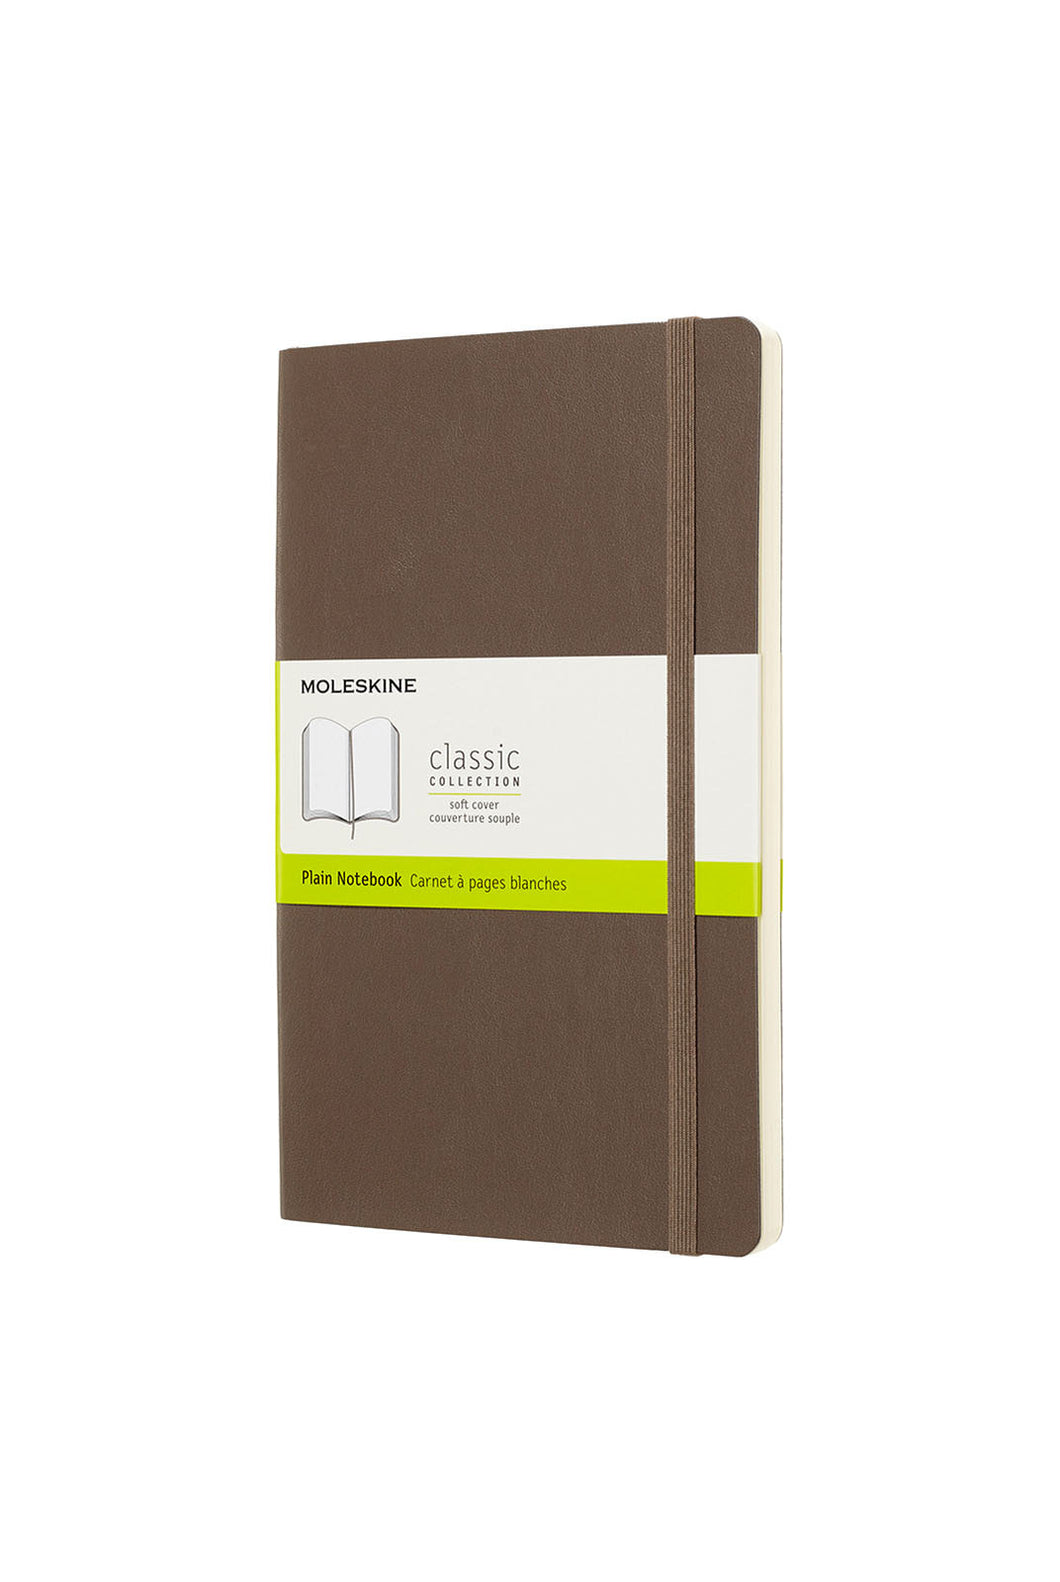 Moleskine - Classic Soft Cover Notebook - Plain - Large (13x21cm) - Earth Brown